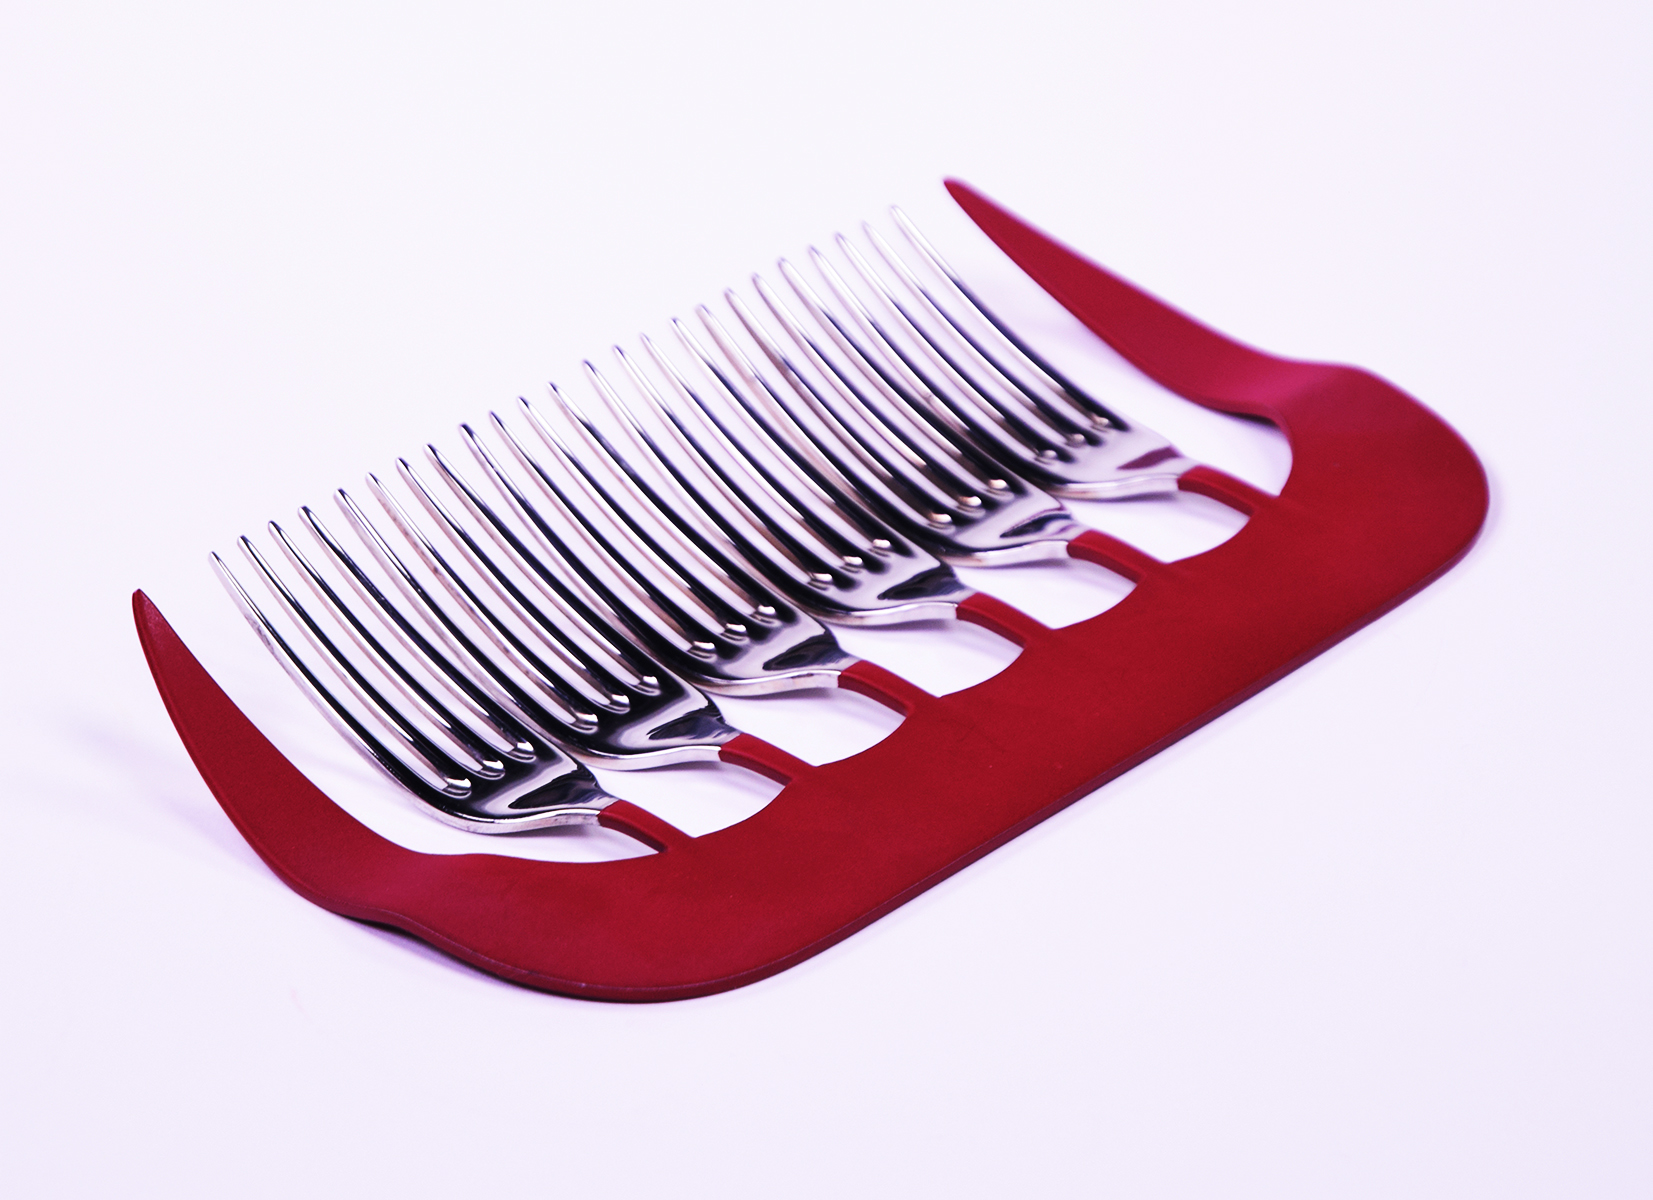 Oversize red metal comb inset with forks, as used for eating